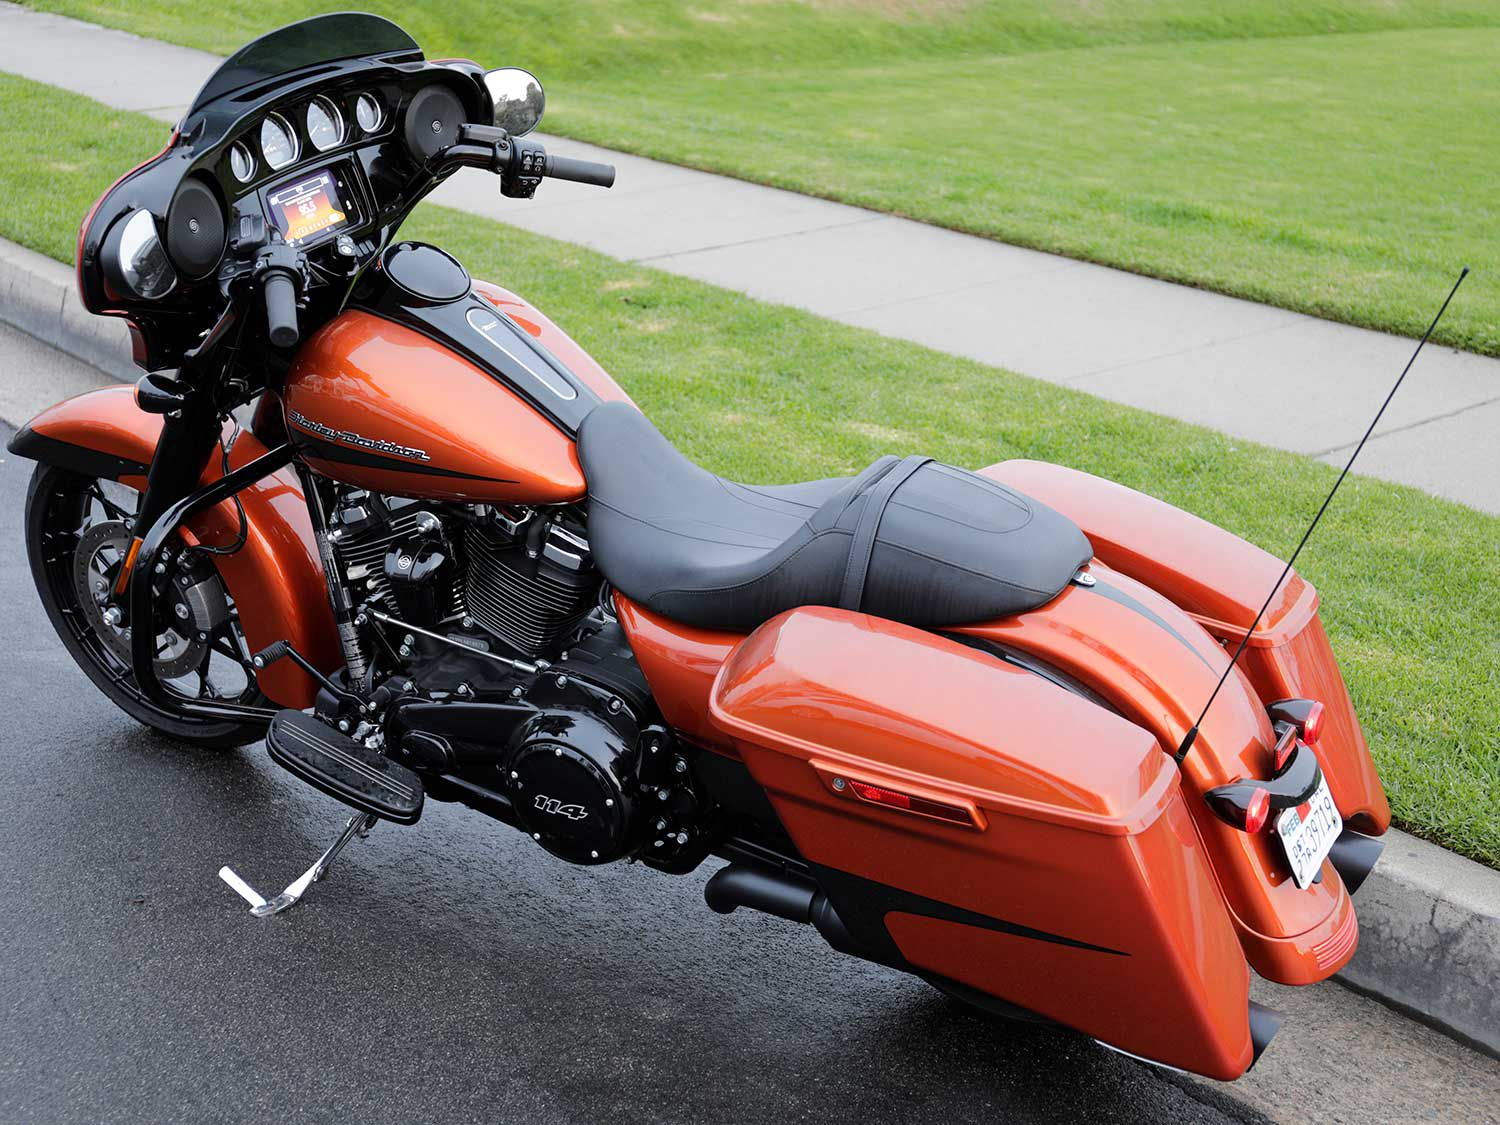 Long and low. The Street Glide Special has a muscular stance that is as comfy as it is tough looking.